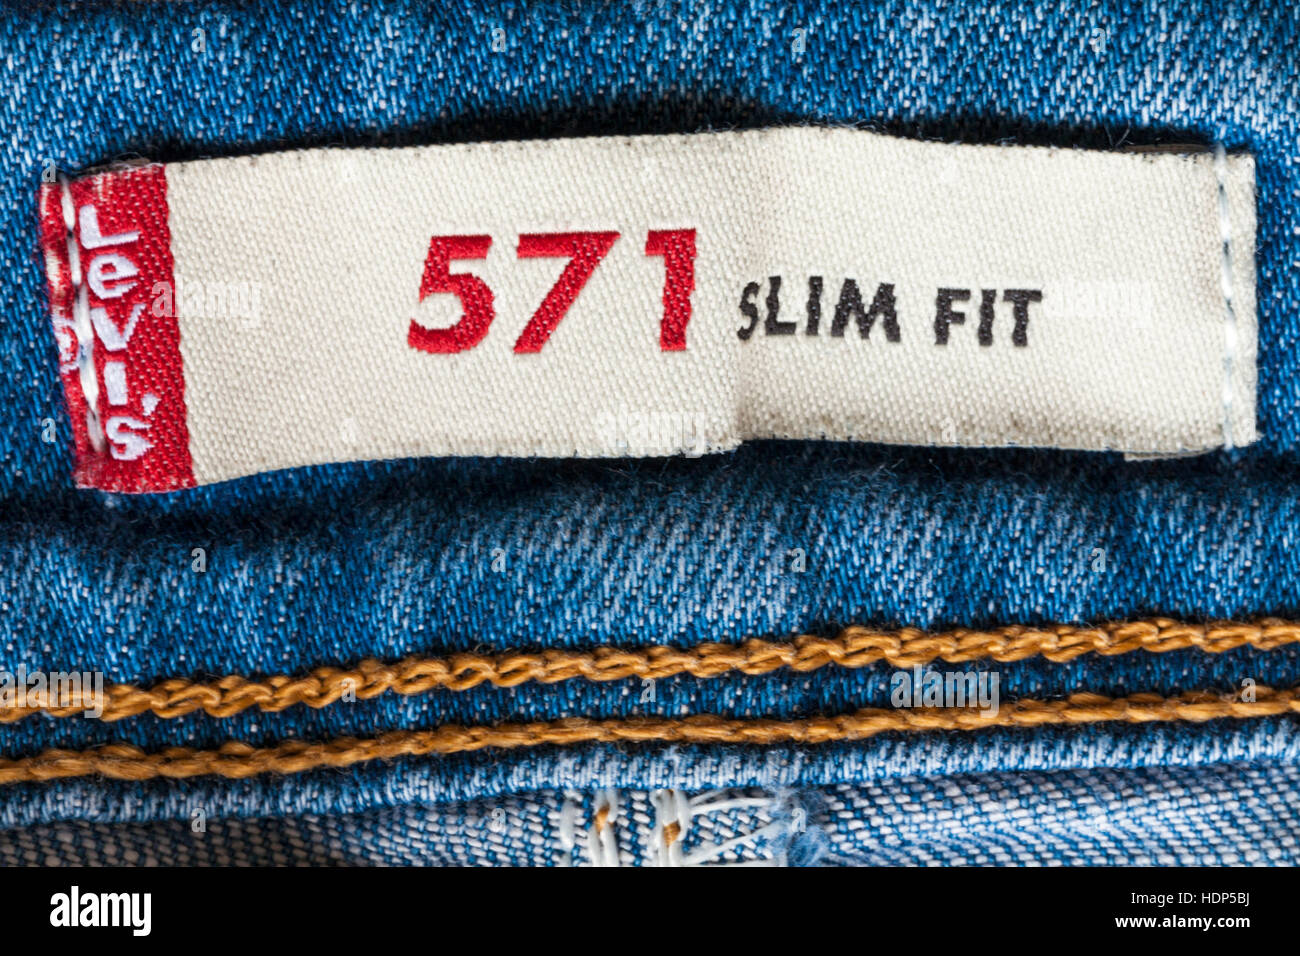 Levis 571 slim fit label in denim jeans - Stock Image